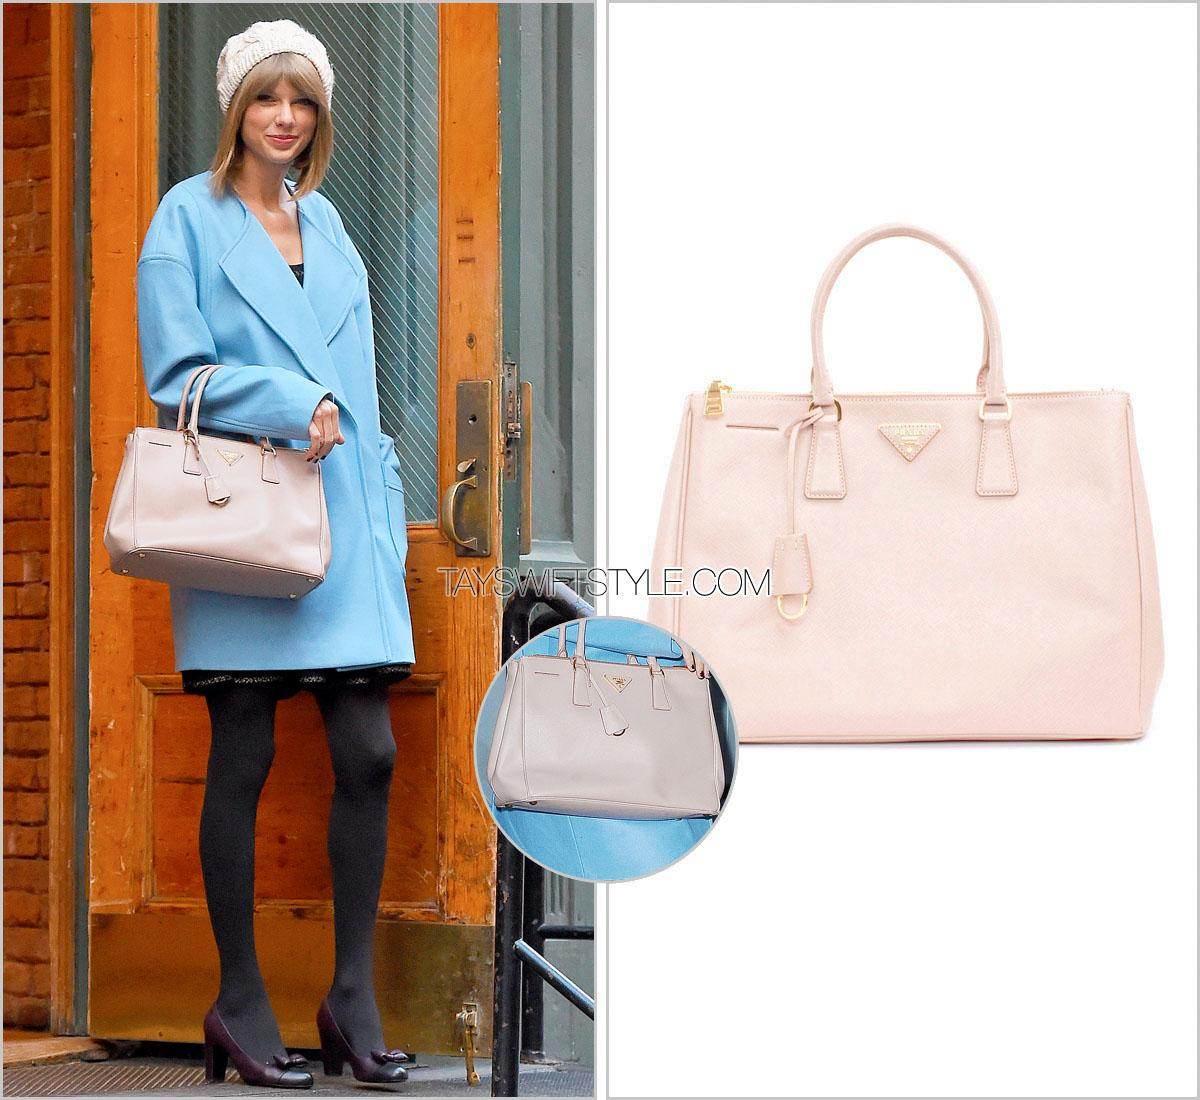 5d826ab87e4b Taylor Swift carries @Prada bag and wears @CHANEL bow cap-toe pumps —  December 11, NYC. http://tayswiftstyle.com pic.twitter.com/G69MQkUCni